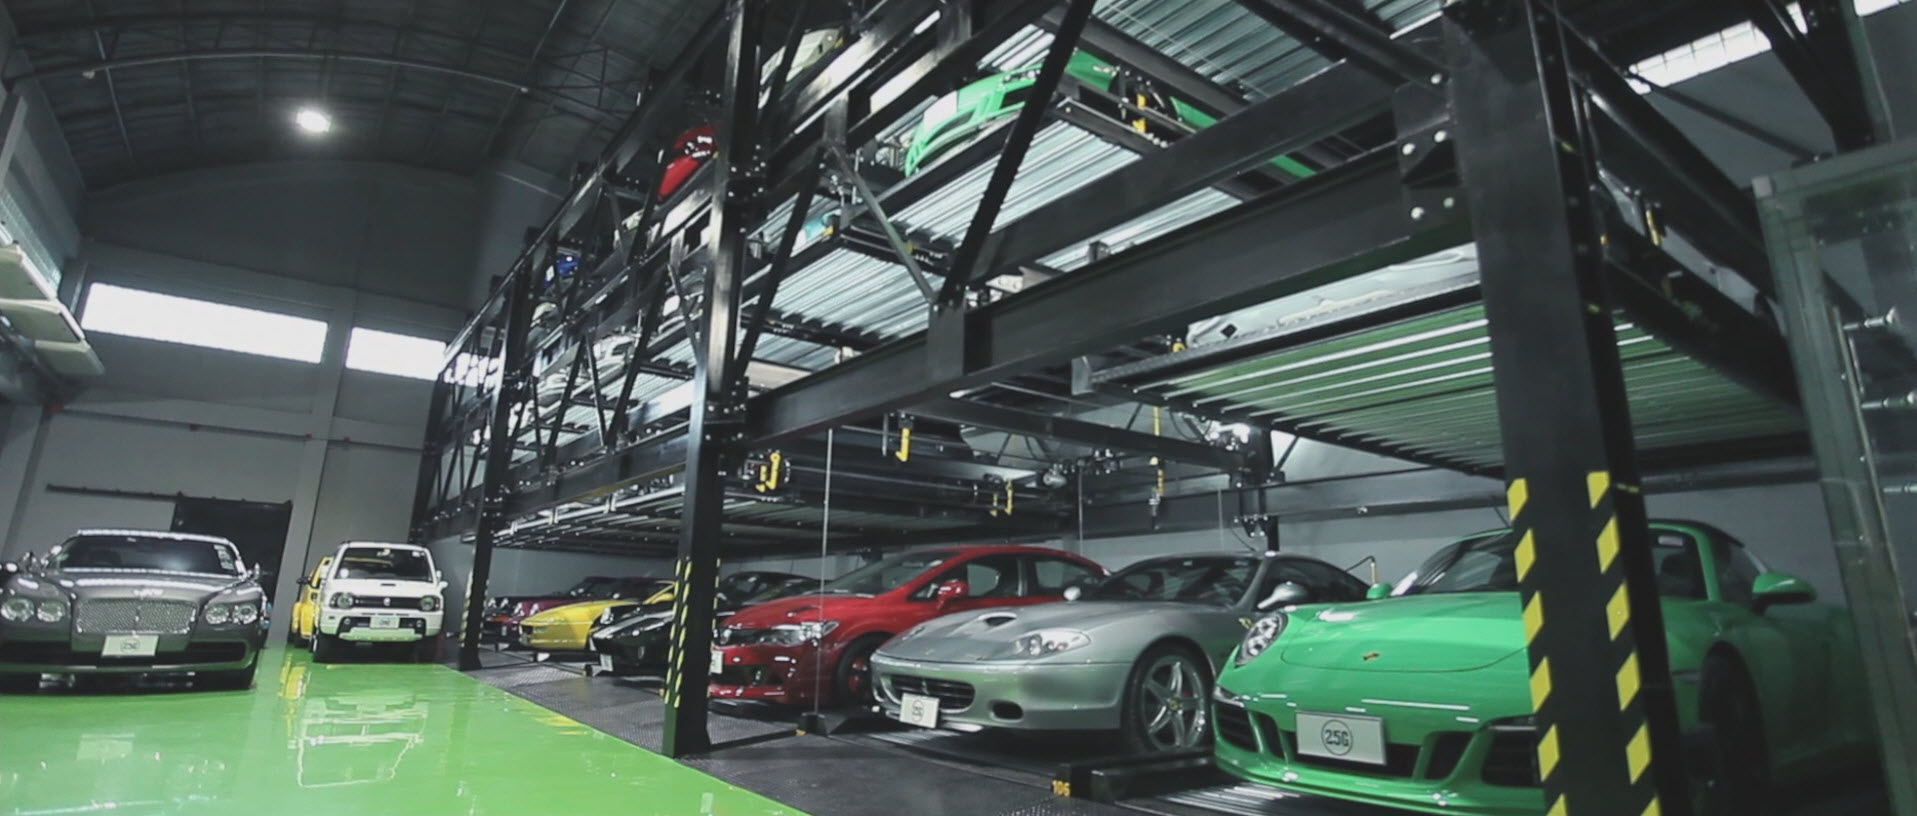 Probably The Most Awesome Car Place In The World!